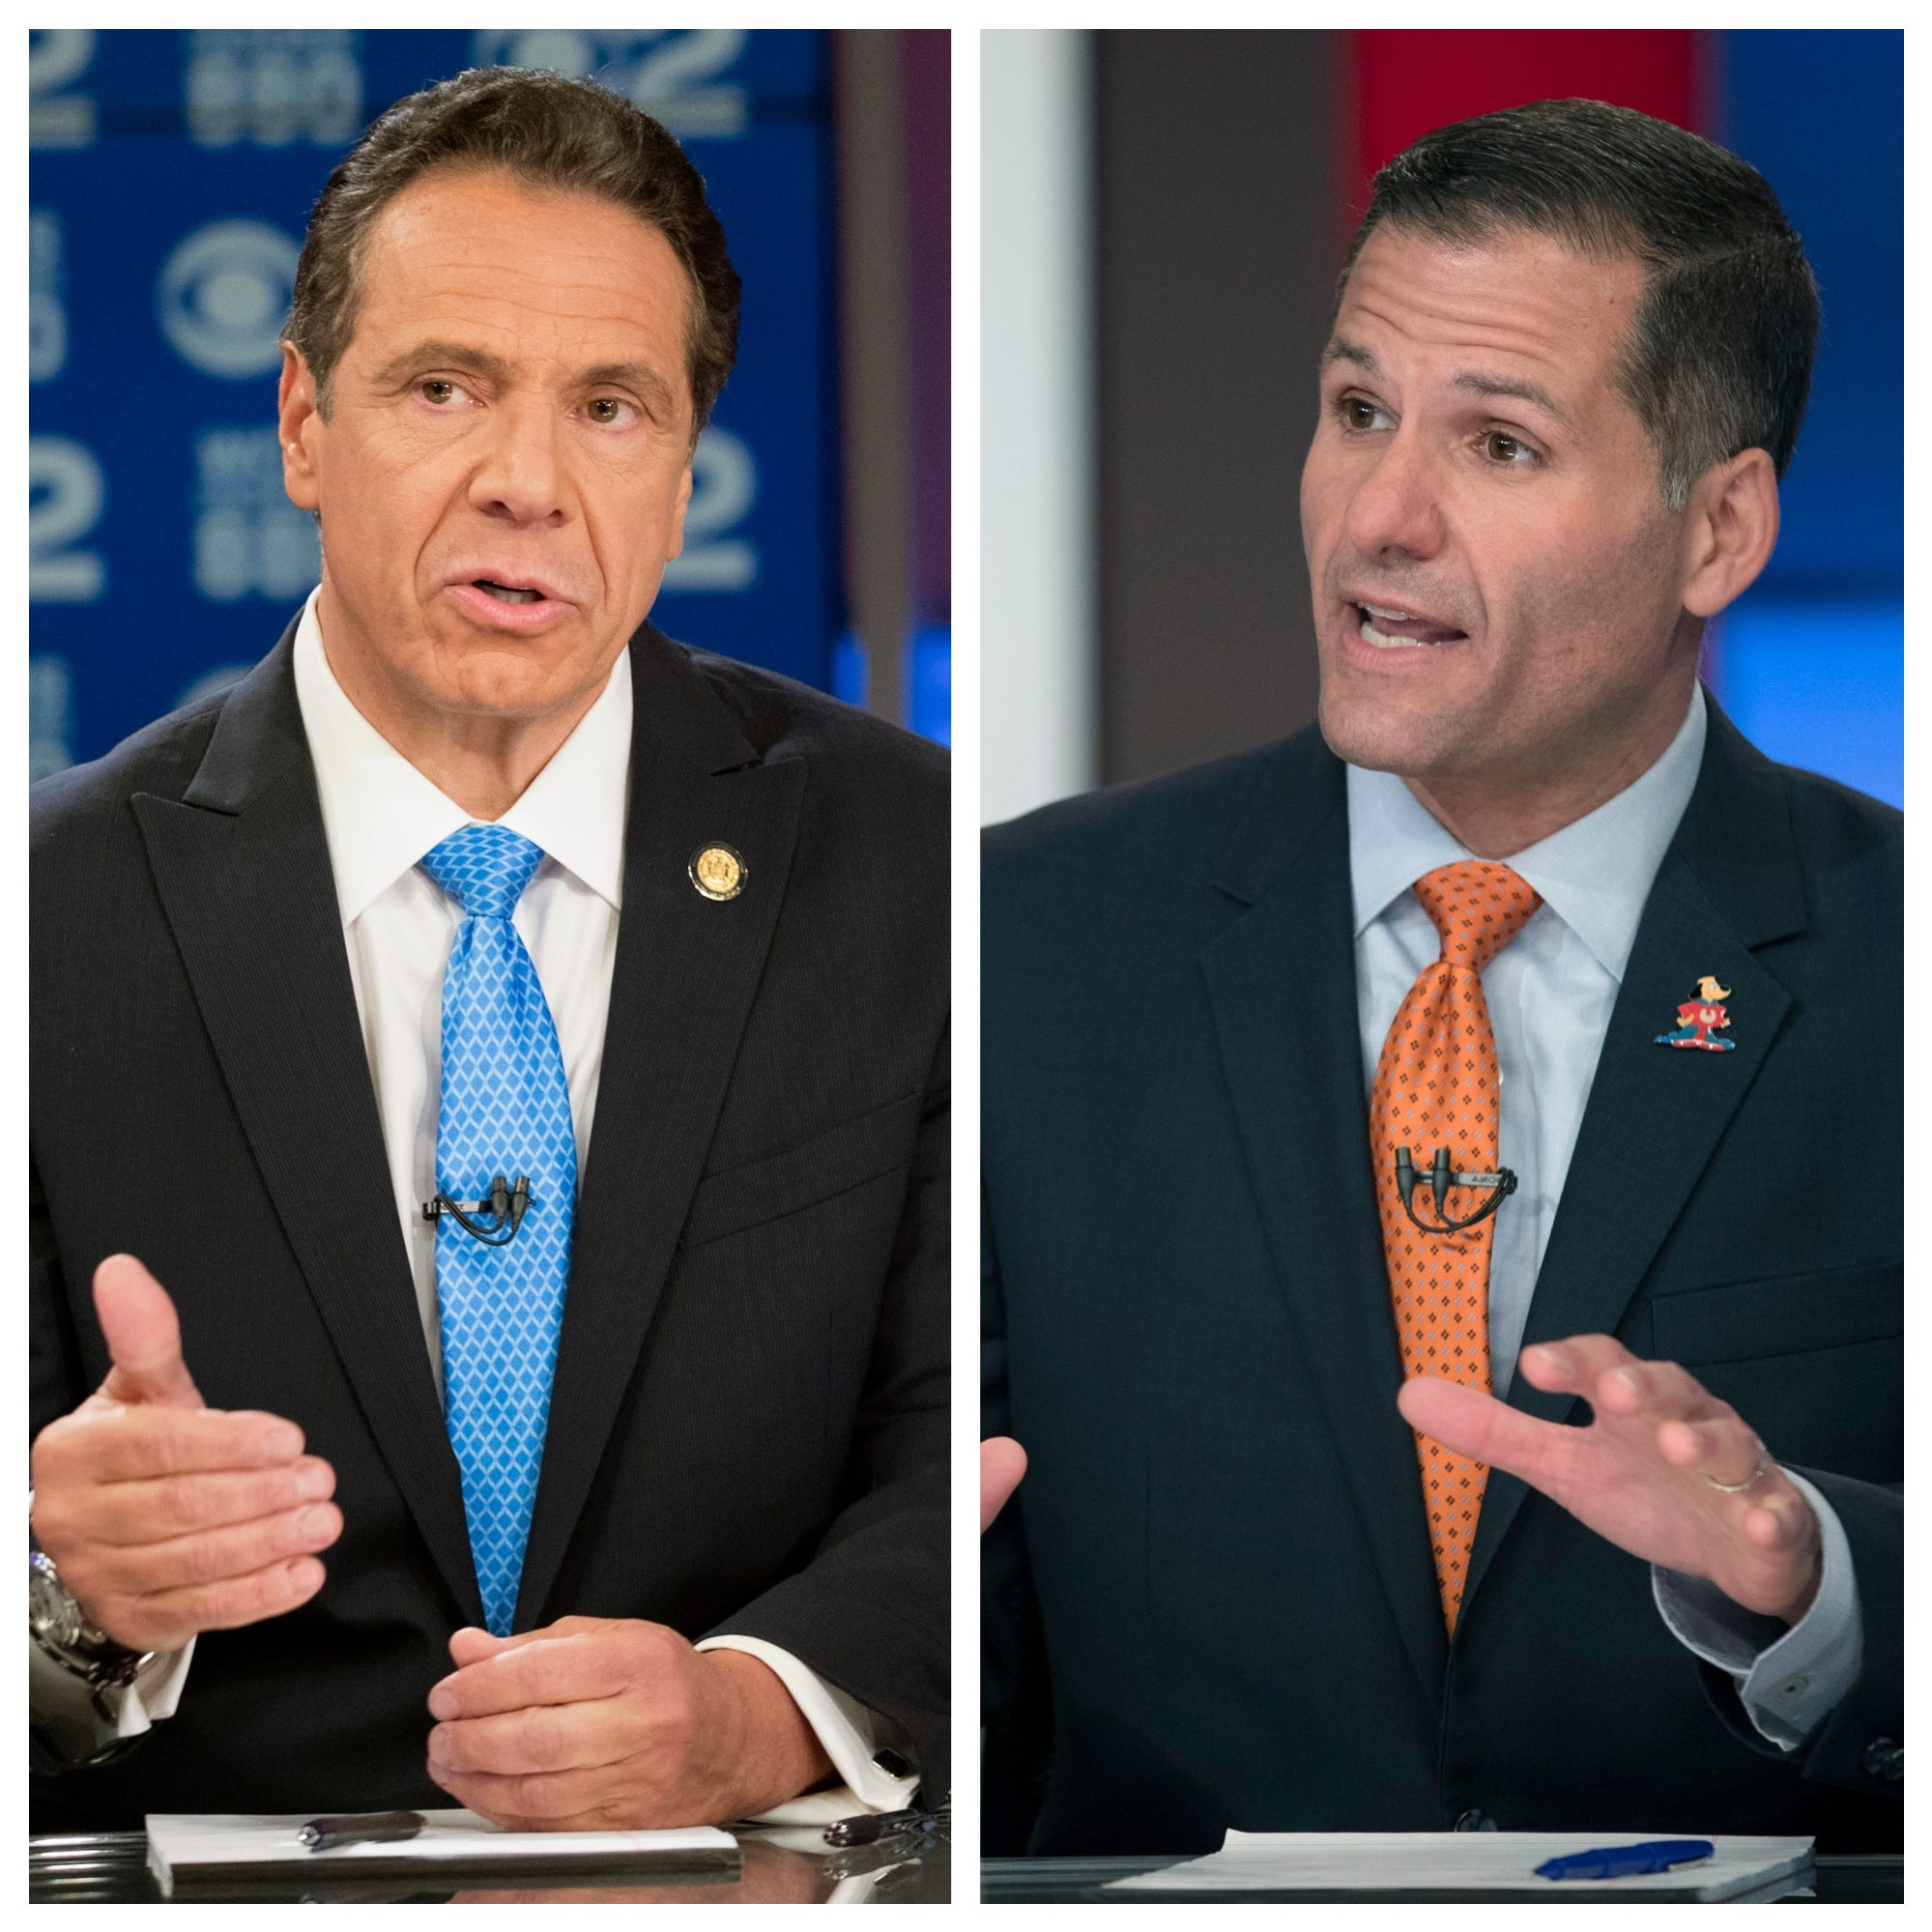 NY governor's race: 4 key issues where Cuomo, Molinaro differ